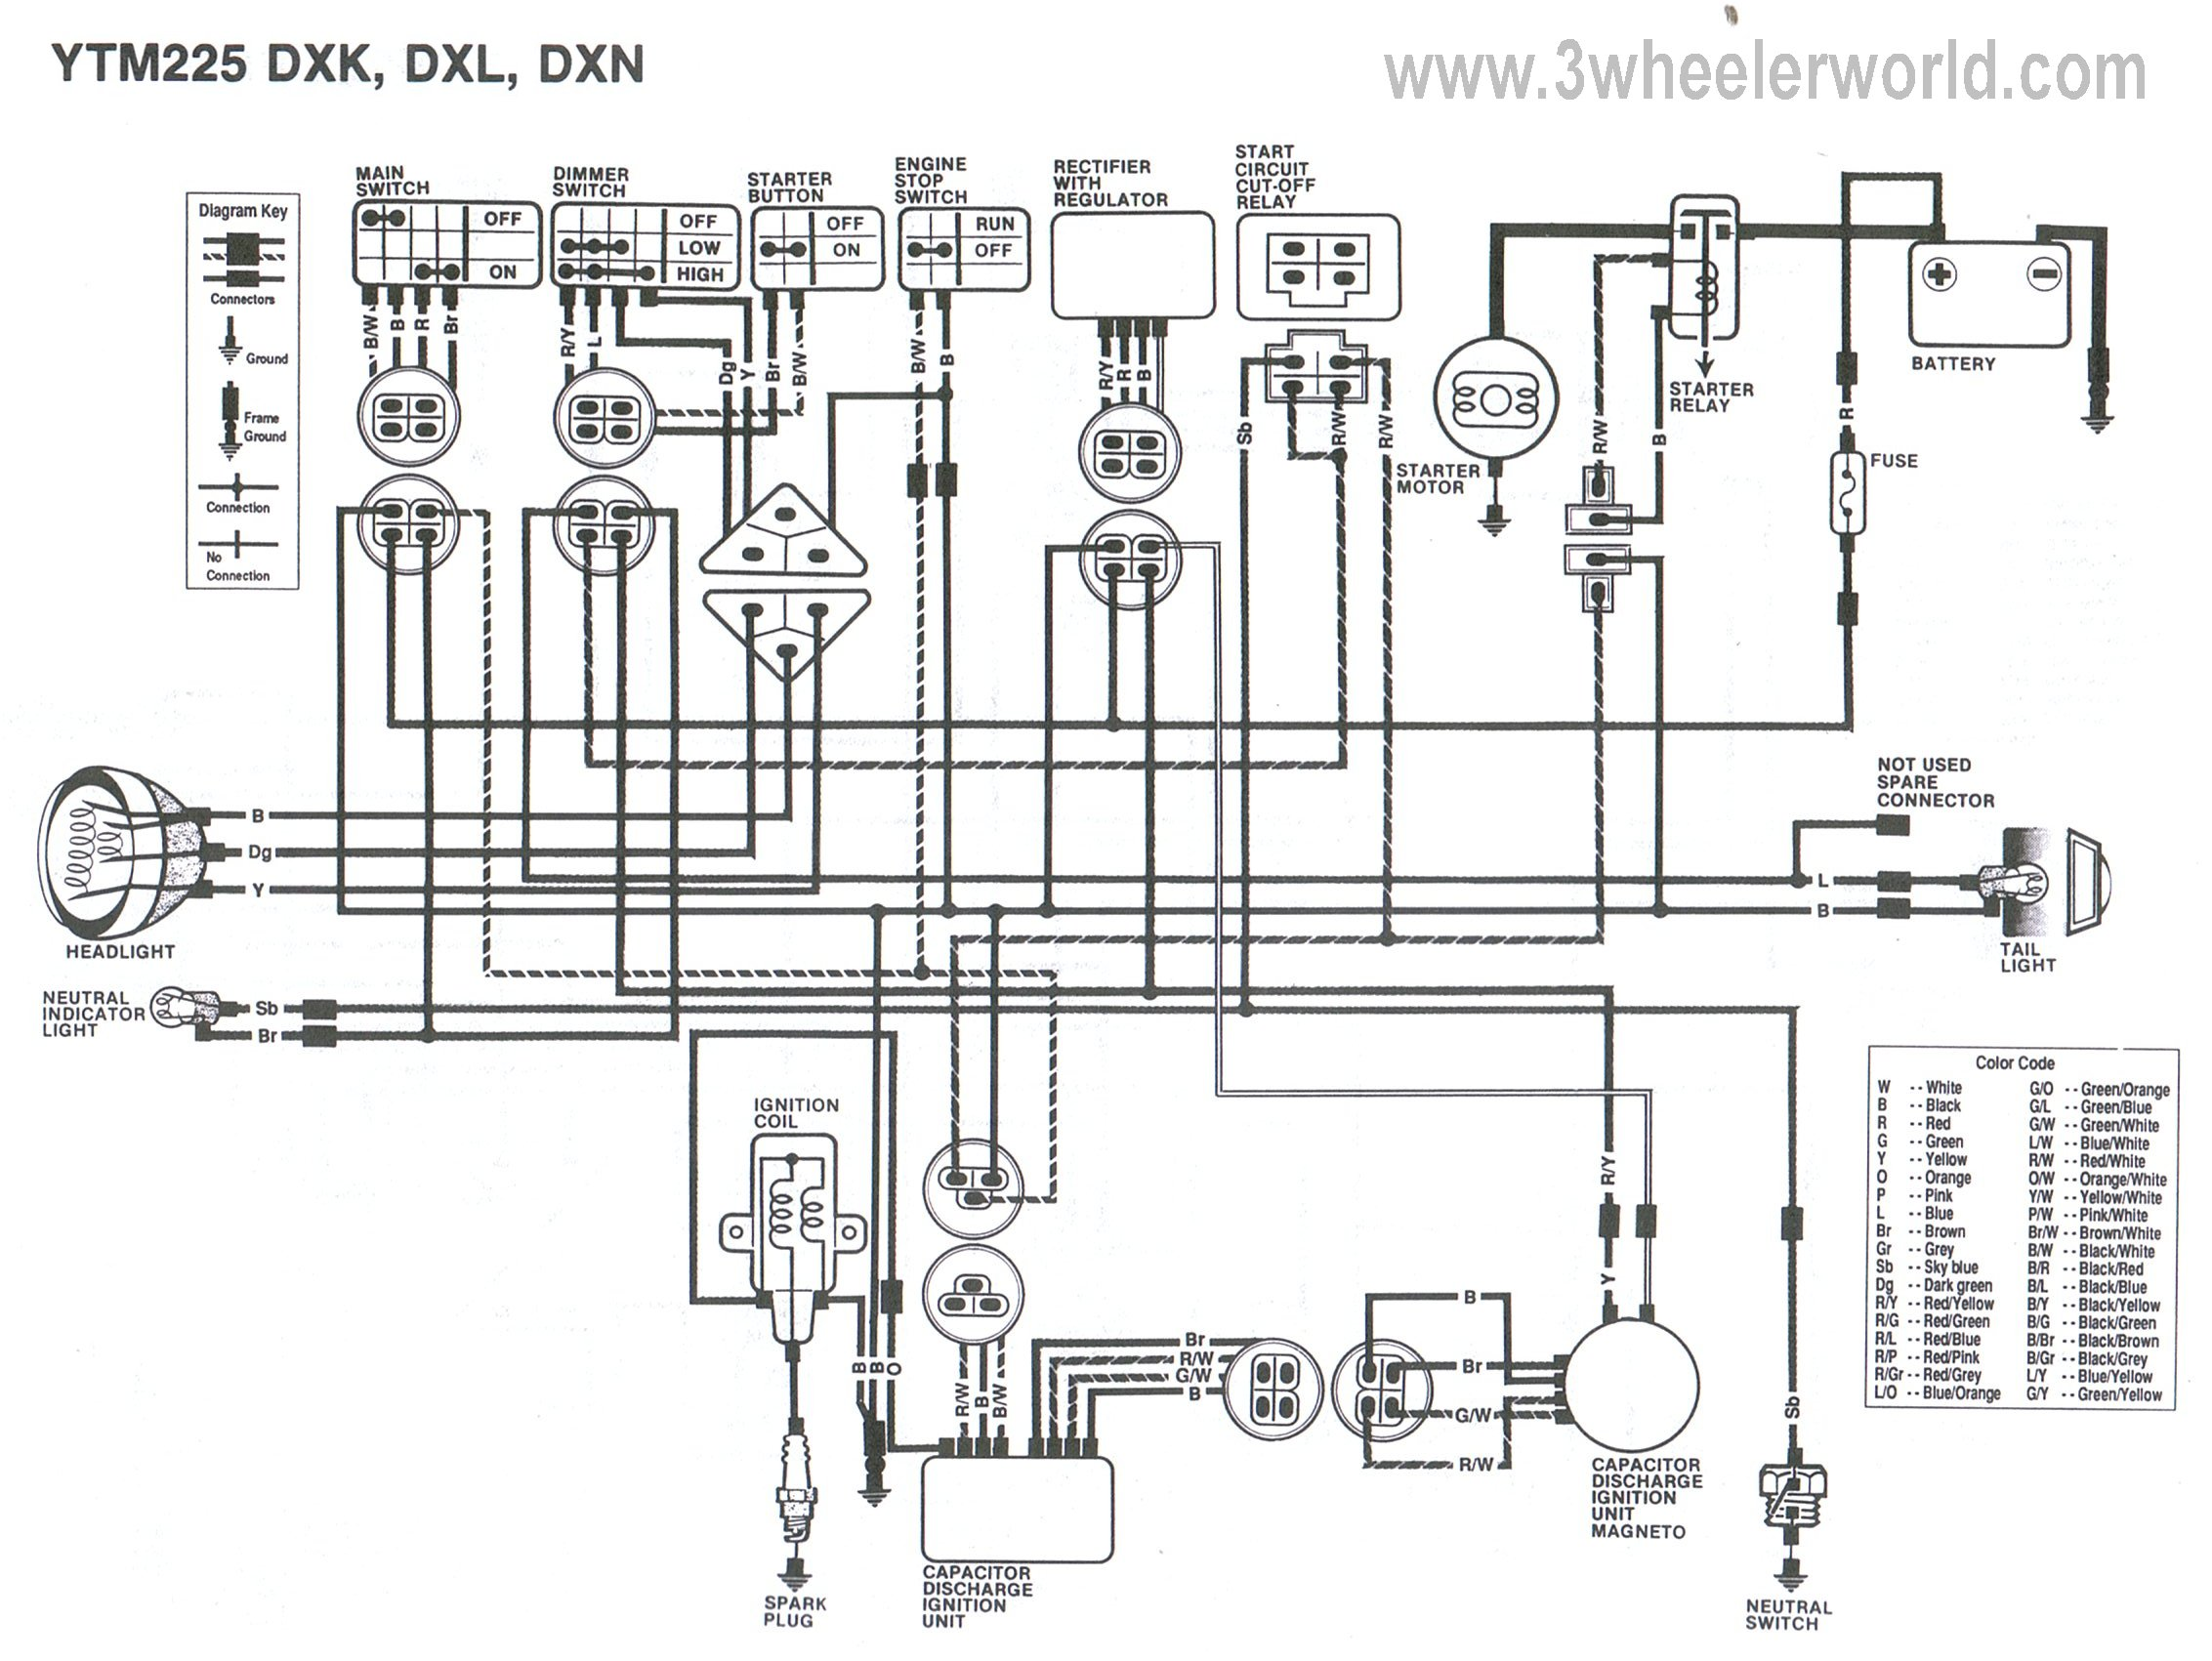 yamaha g9 wiring diagram yamaha 225dx engine diagram yamaha wiring diagrams